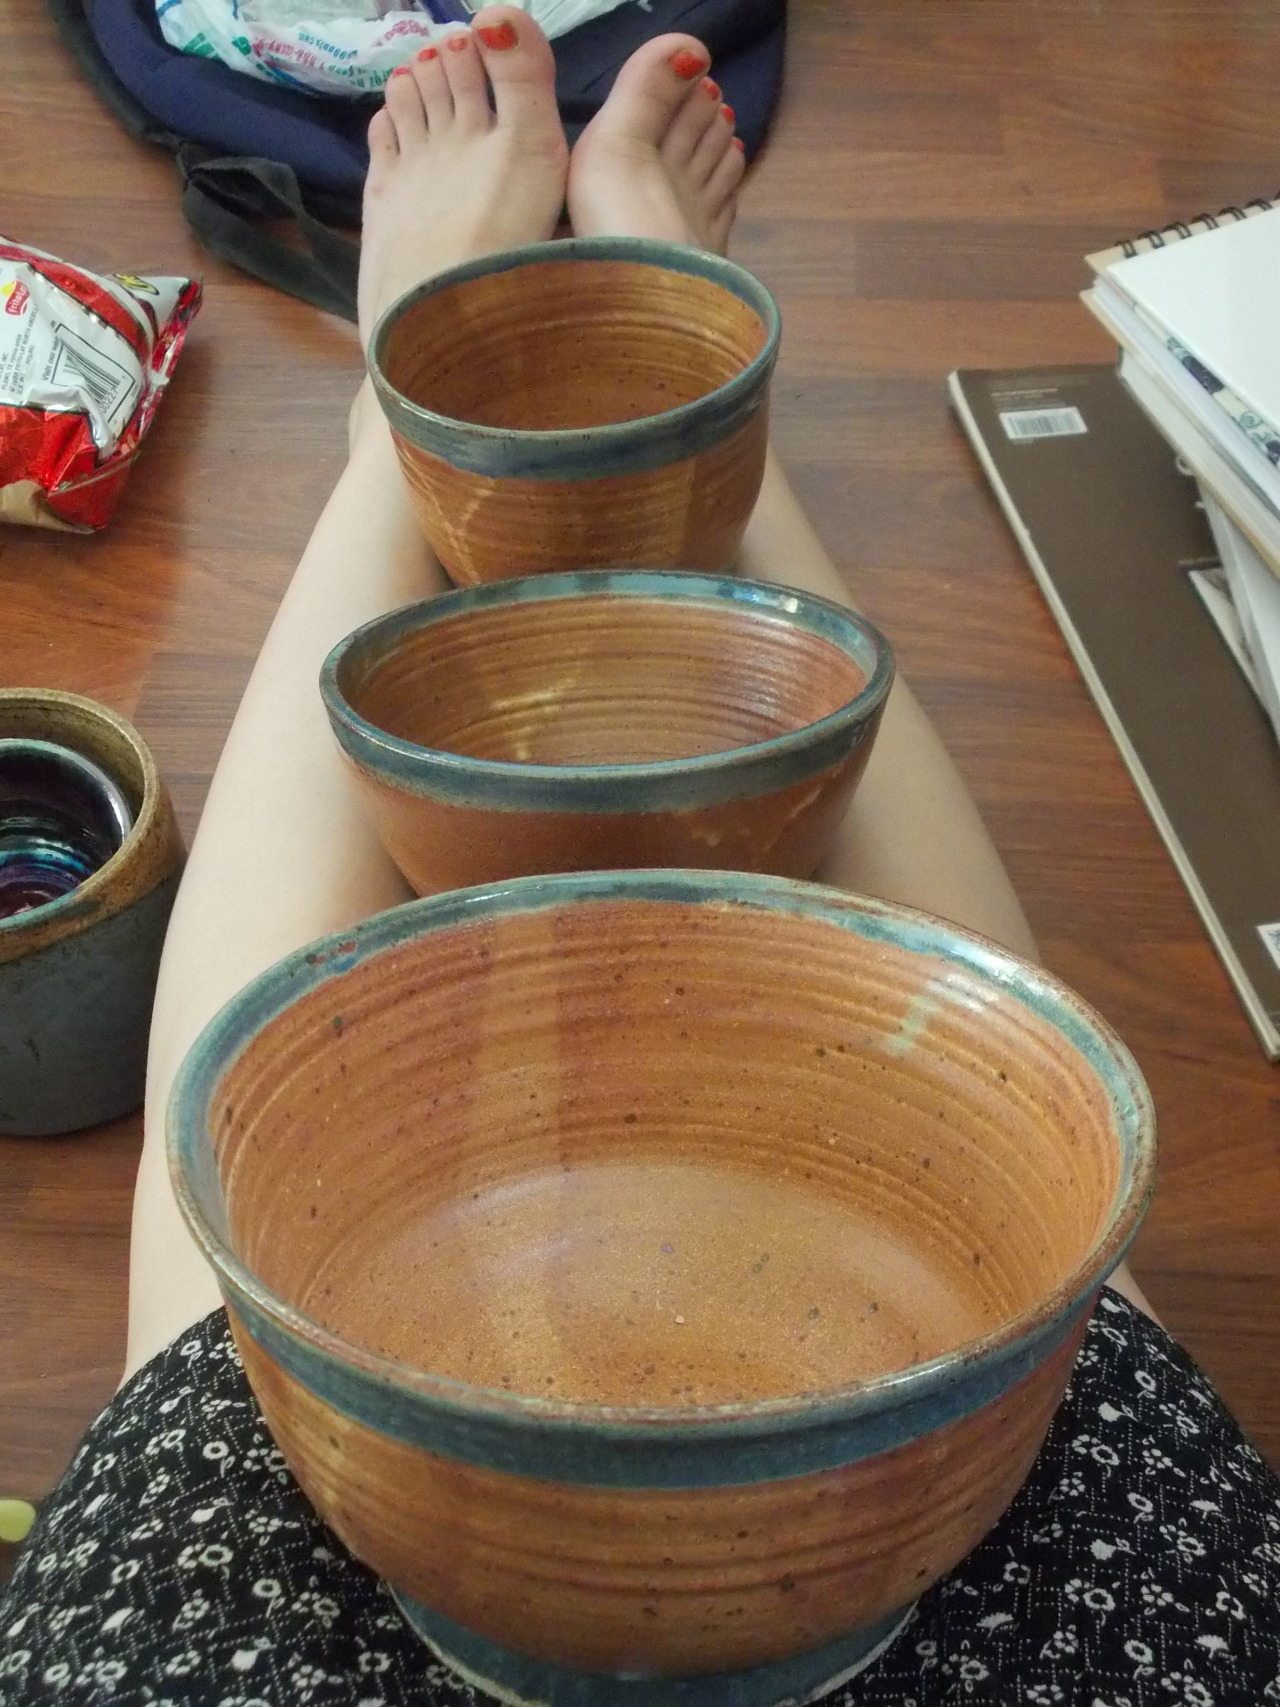 Some large bowls I made for my 2013 Spring Collection. Message me if you'd like to make me an offer. These are glazed with Speckled Yellow and Aegean Blue mixed by Tom Dunn at Azusa Pacific University.